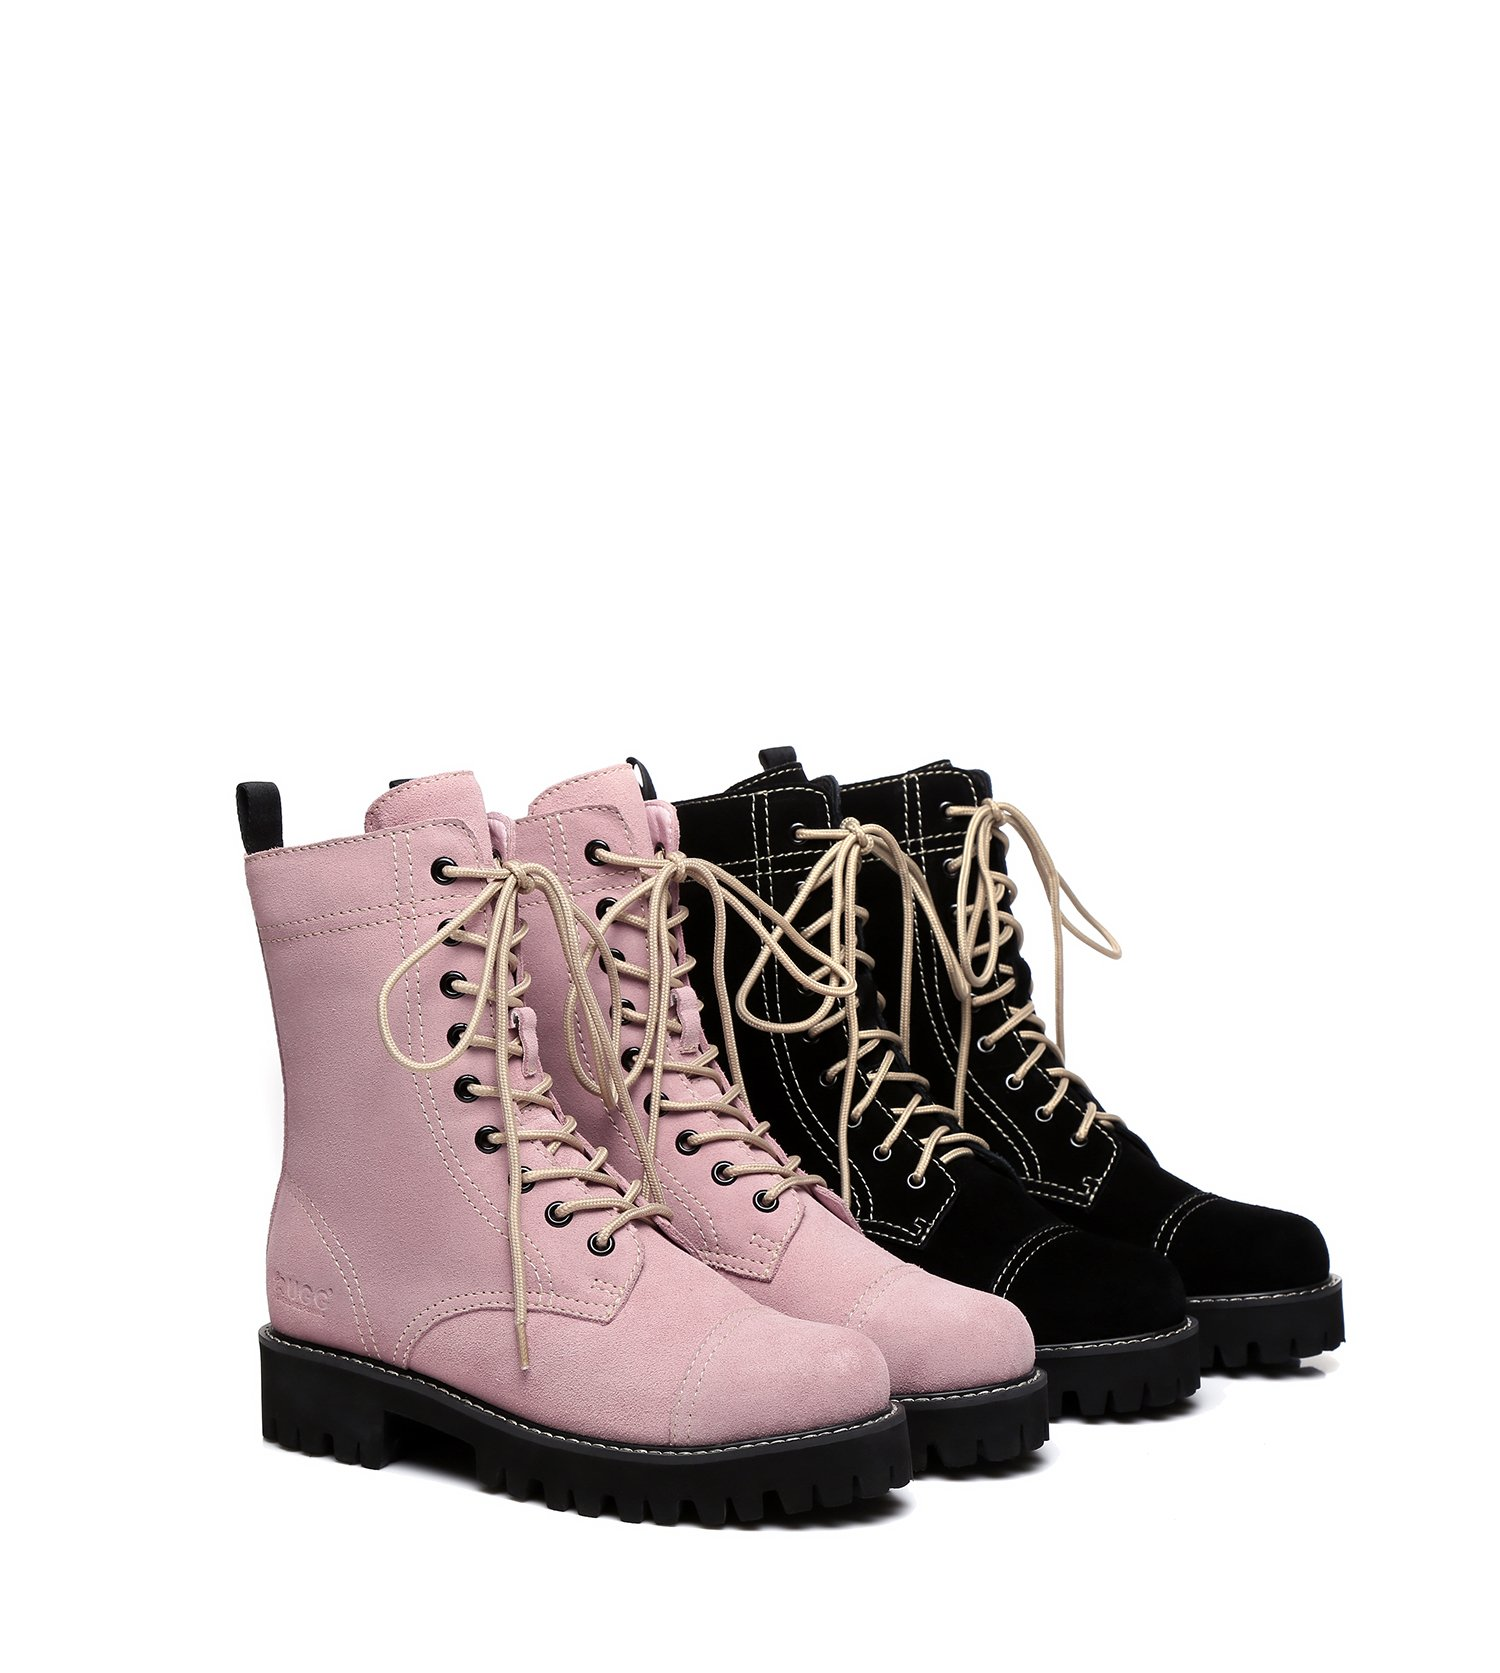 e423b935ead4ec Image of EVER UGG Boots Miss Idol - Ladies Fashion with Front Lace  Sheepskin Lining Cow